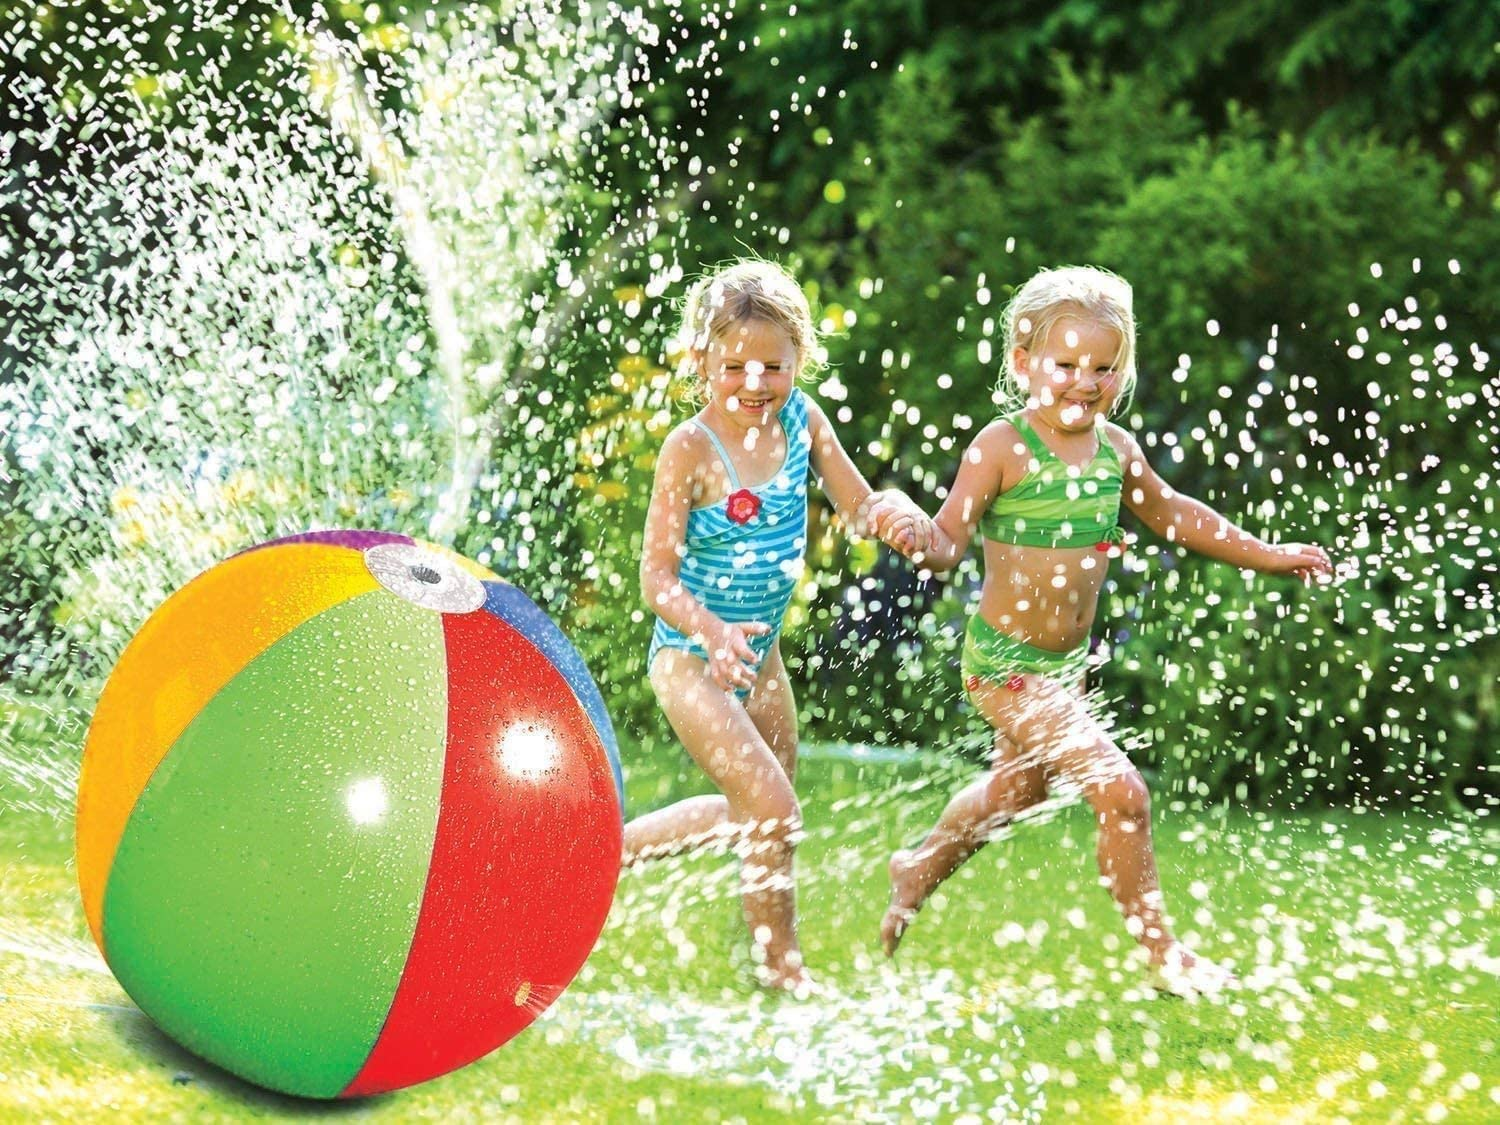 Sprinkler Outdoor Water Spray Ball MIGGOING Splash and Spray Ball 30in-Diameter Inflatable Sprinkler Water Ball Outdoor Fun Toy for Hot Summer Swimming Party Beach Pool Play